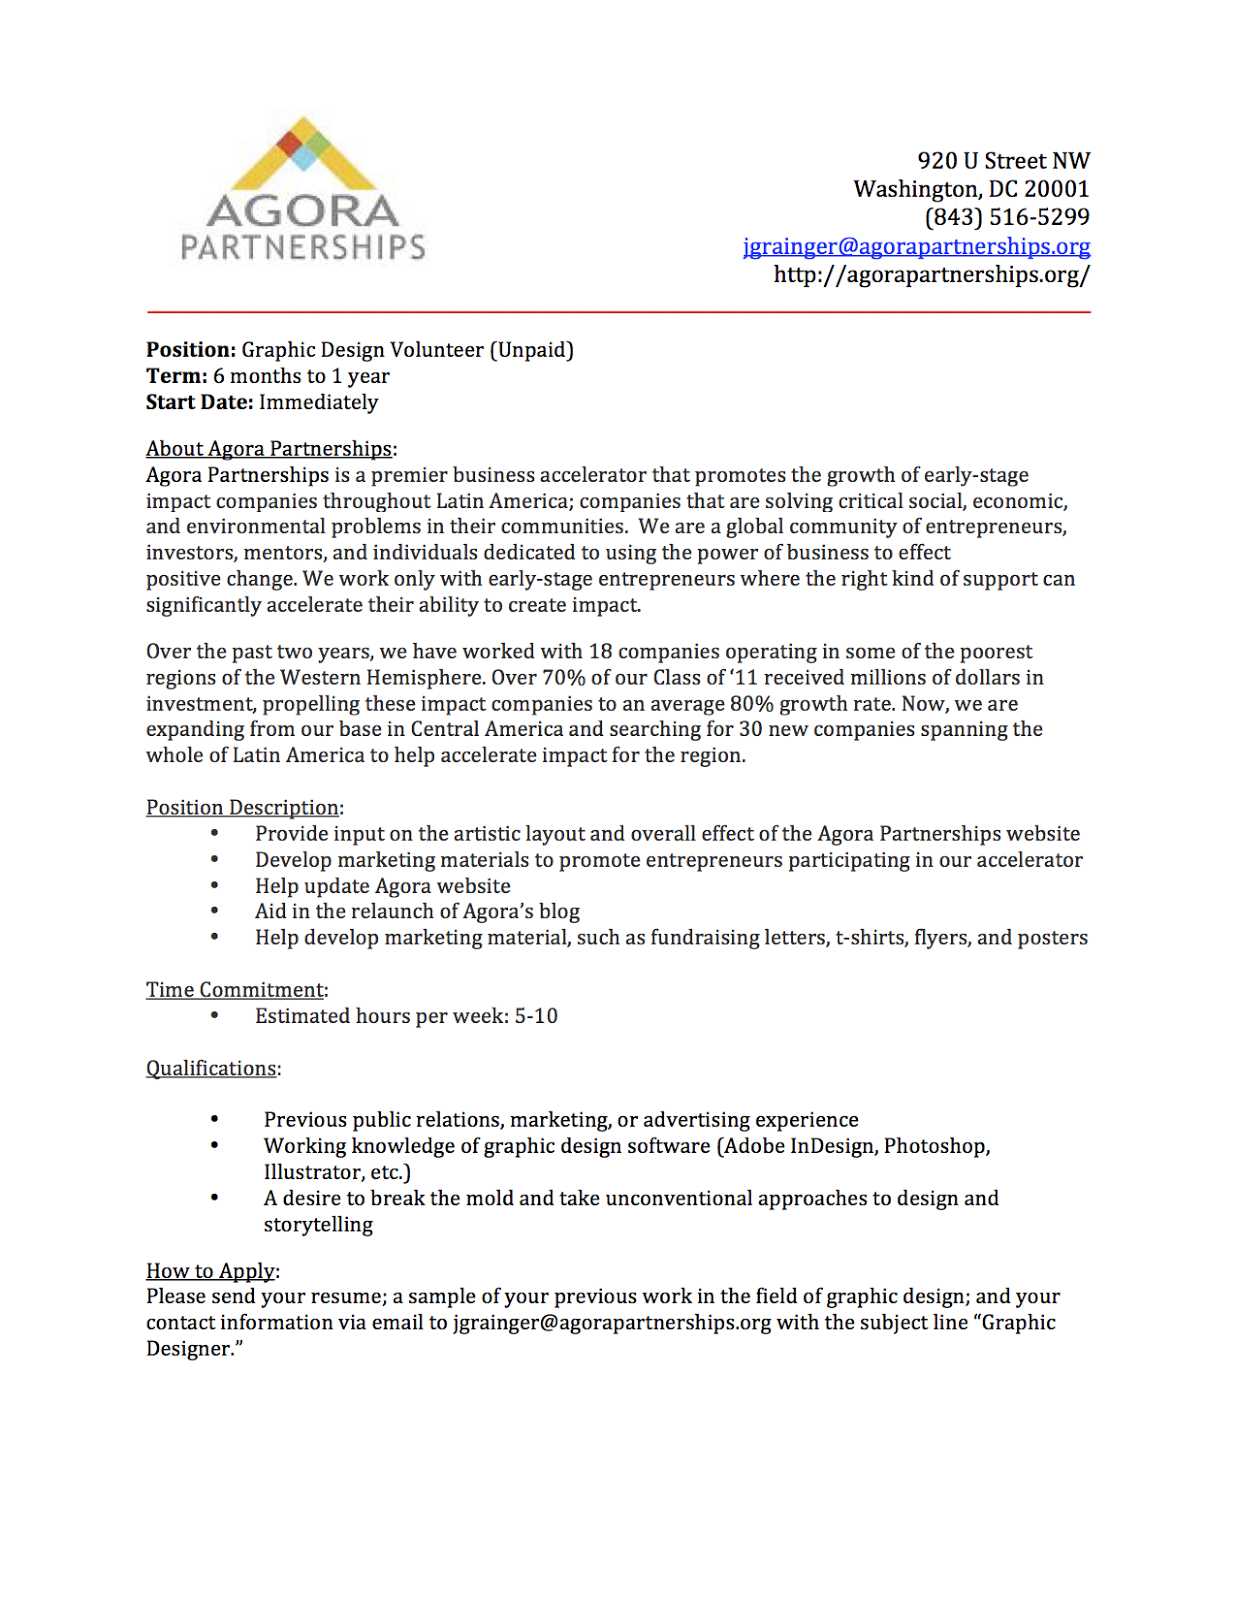 cover letter of graphic design sample agora2bgraphic designer2bfeb2b2013 cover letter of graphic design sample industrial design engineer cover letter - Industrial Design Engineer Sample Resume